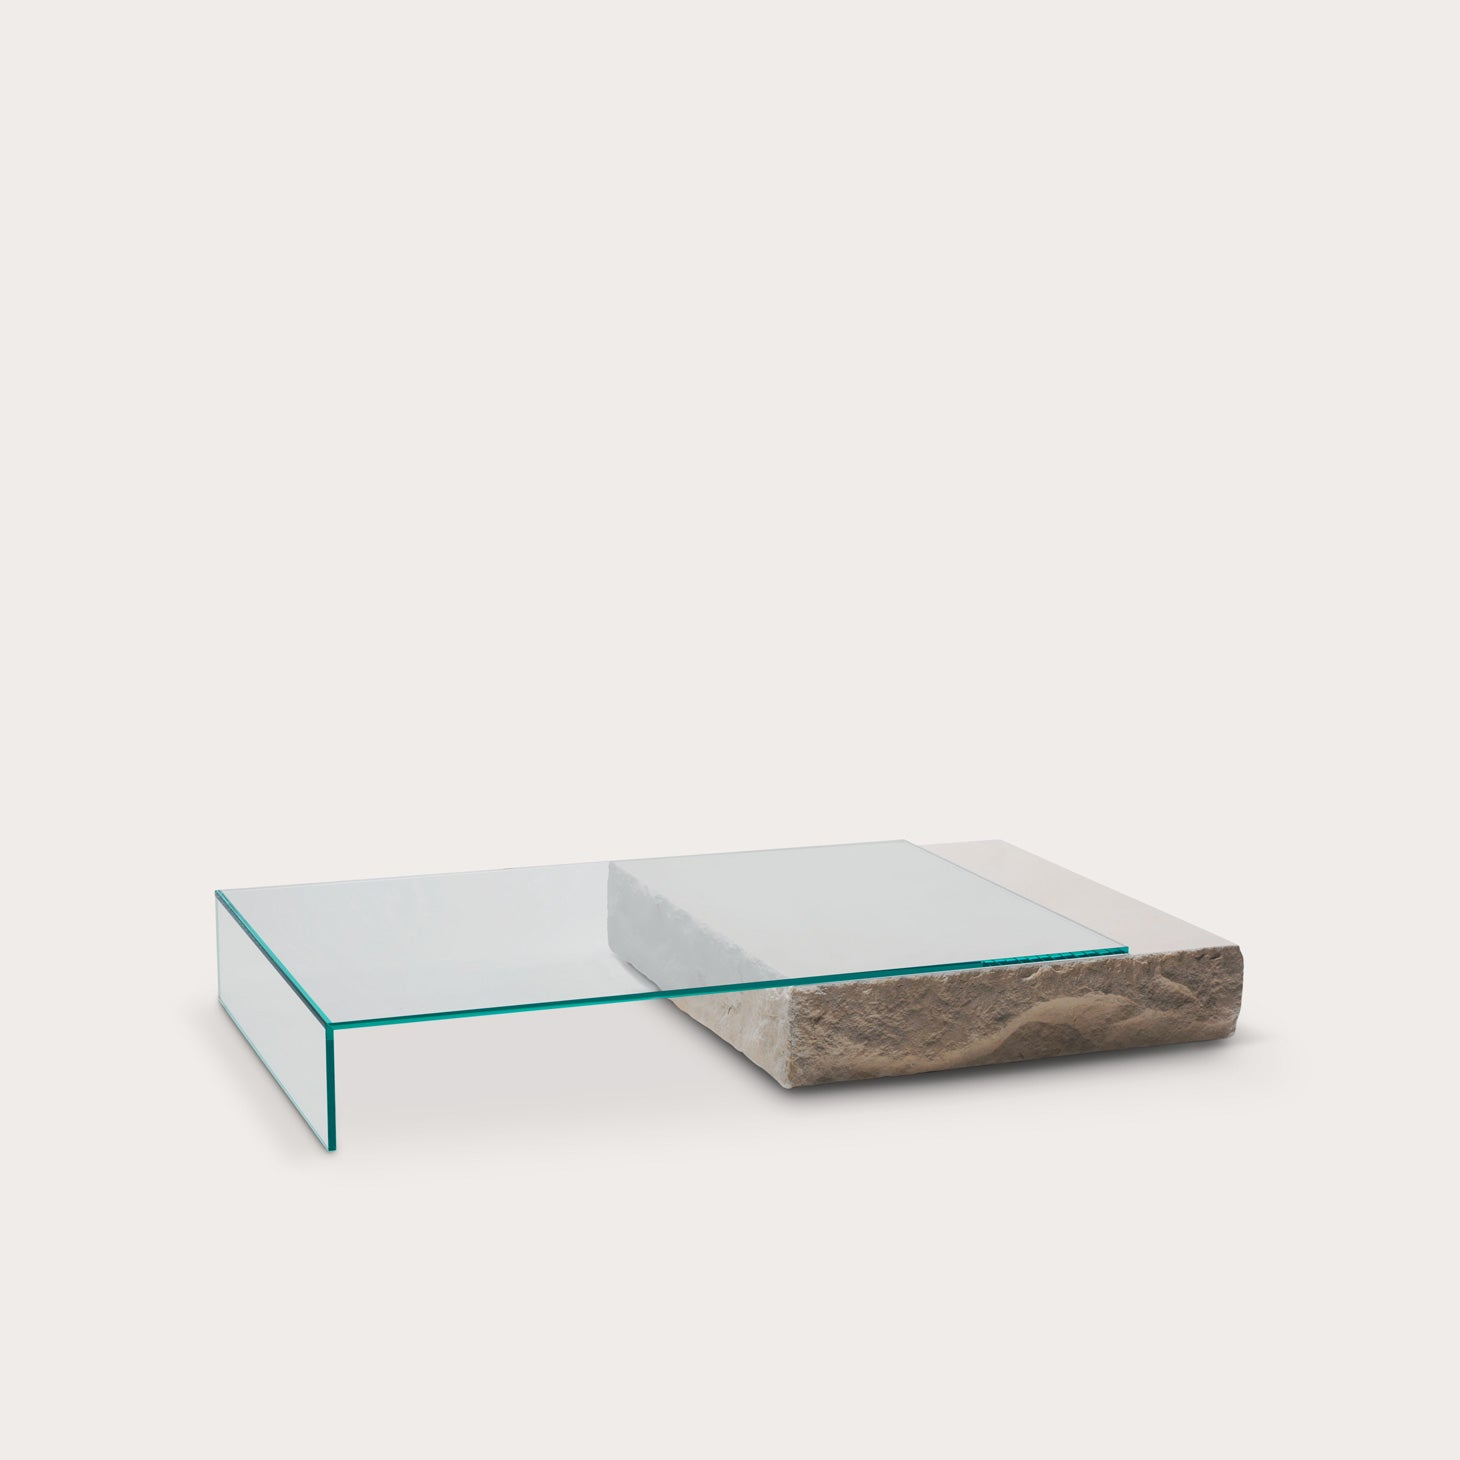 Terraliquida Tables Claudio Silvestrin Designer Furniture Sku: 288-230-10082